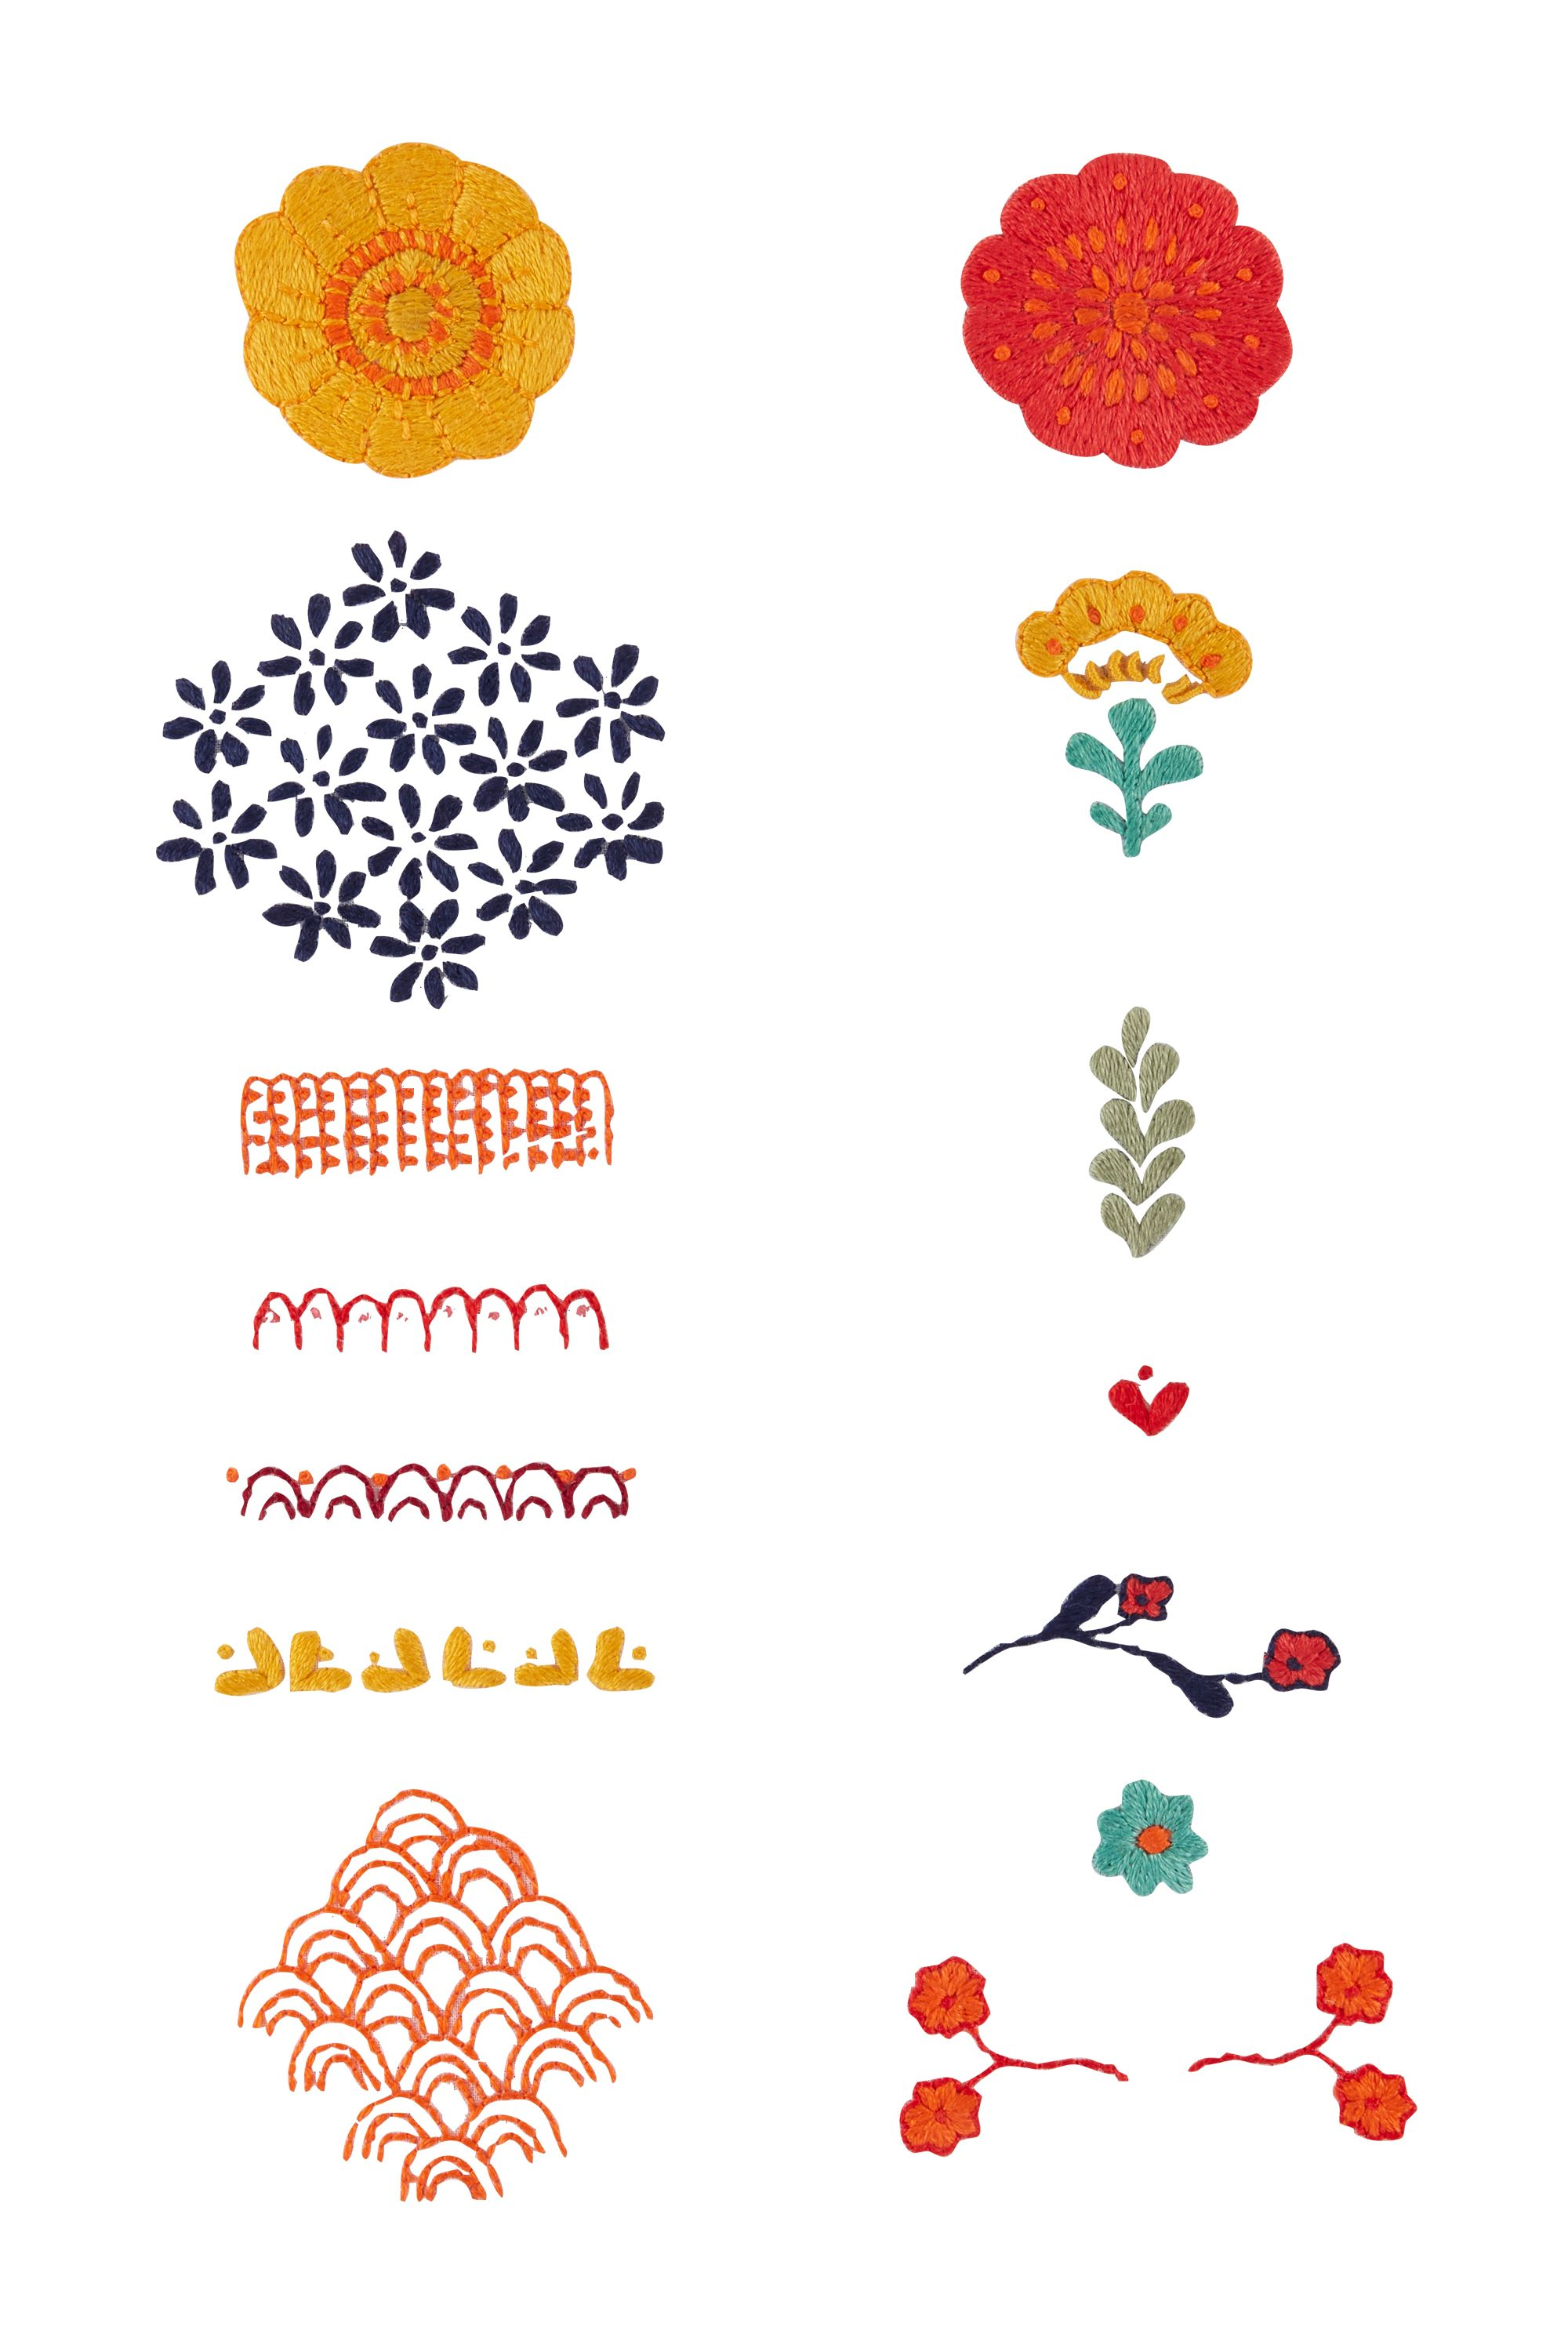 Marigold Elements - pattern | Day in a life photos | Pinterest ...